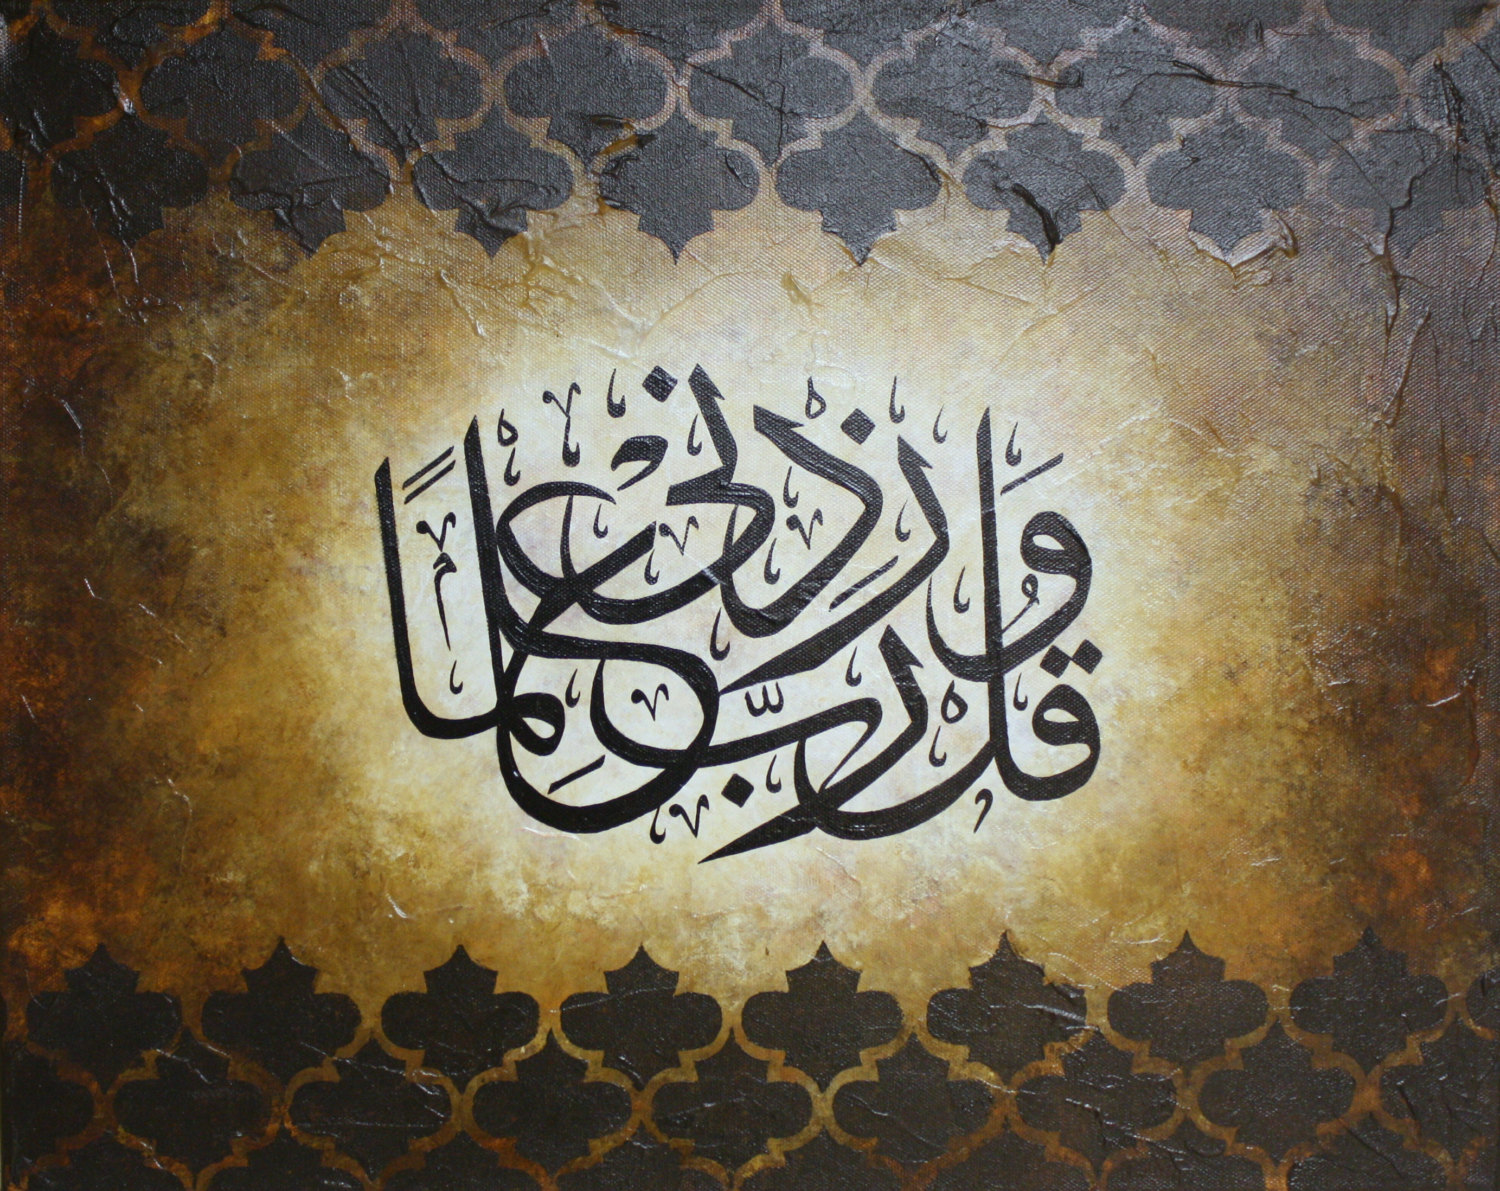 Arabic Calligraphy Rabbi Zidni Ilma